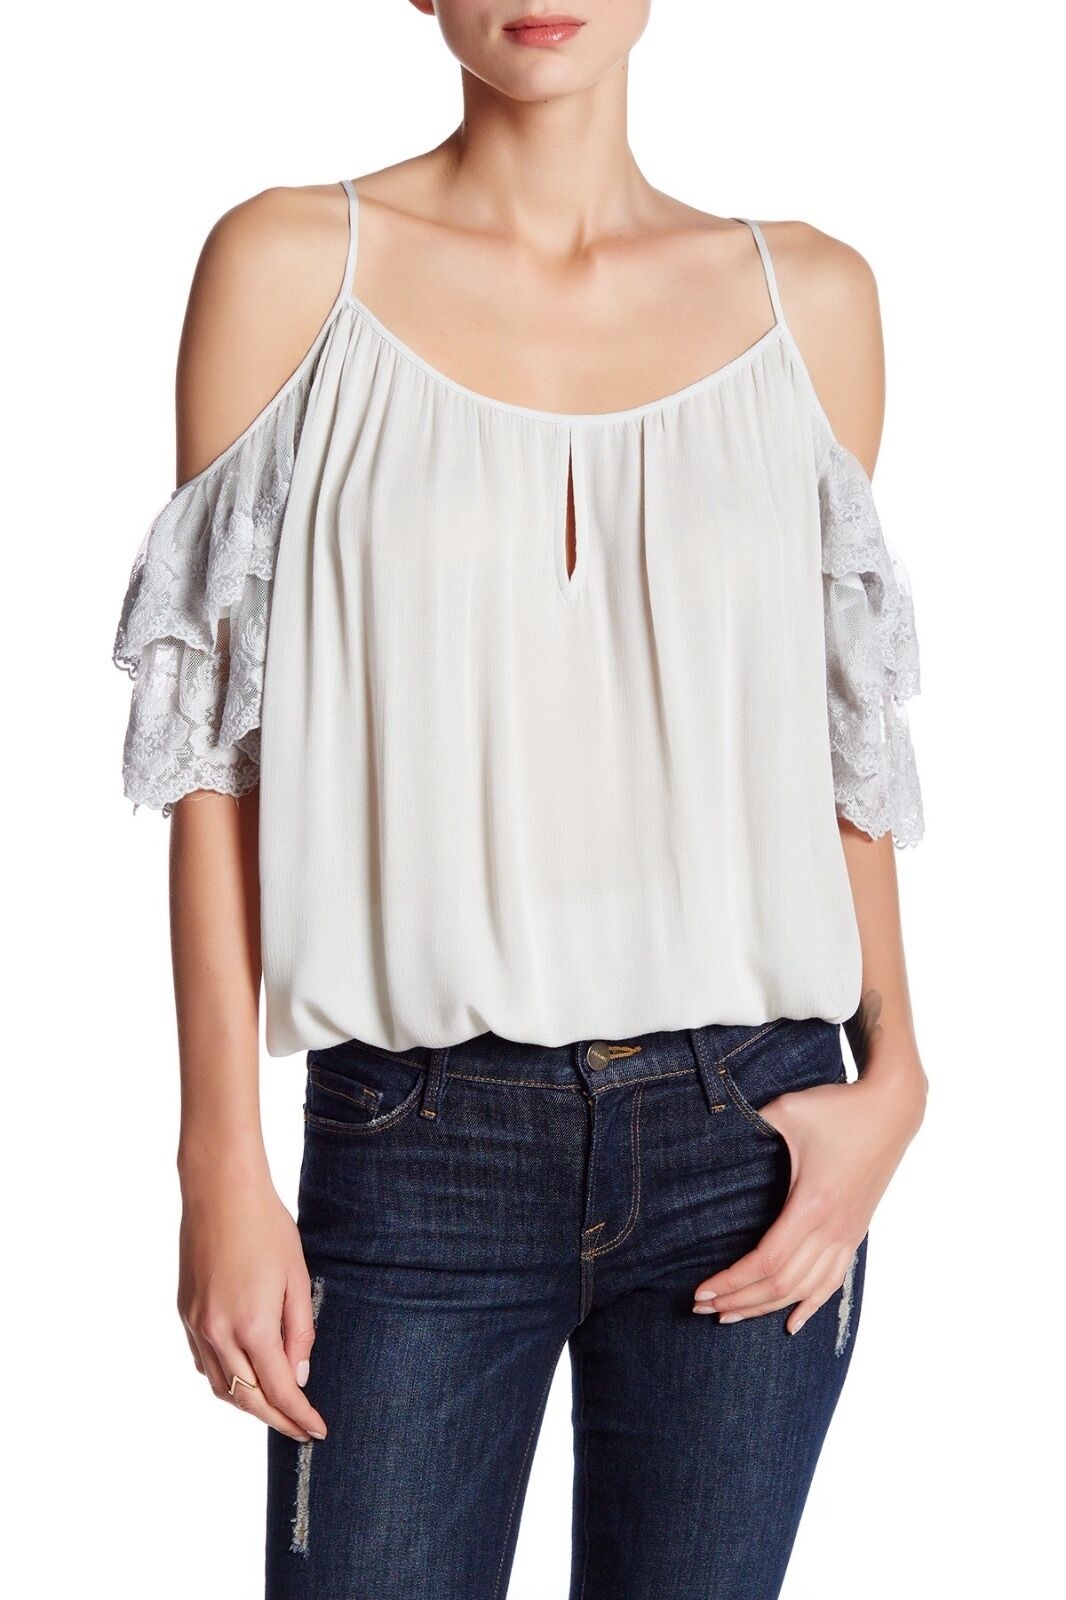 Liberty Garden Floral Lace Cold Shoulder Top   Ruffled bluee Ivory XS 6ETY2972